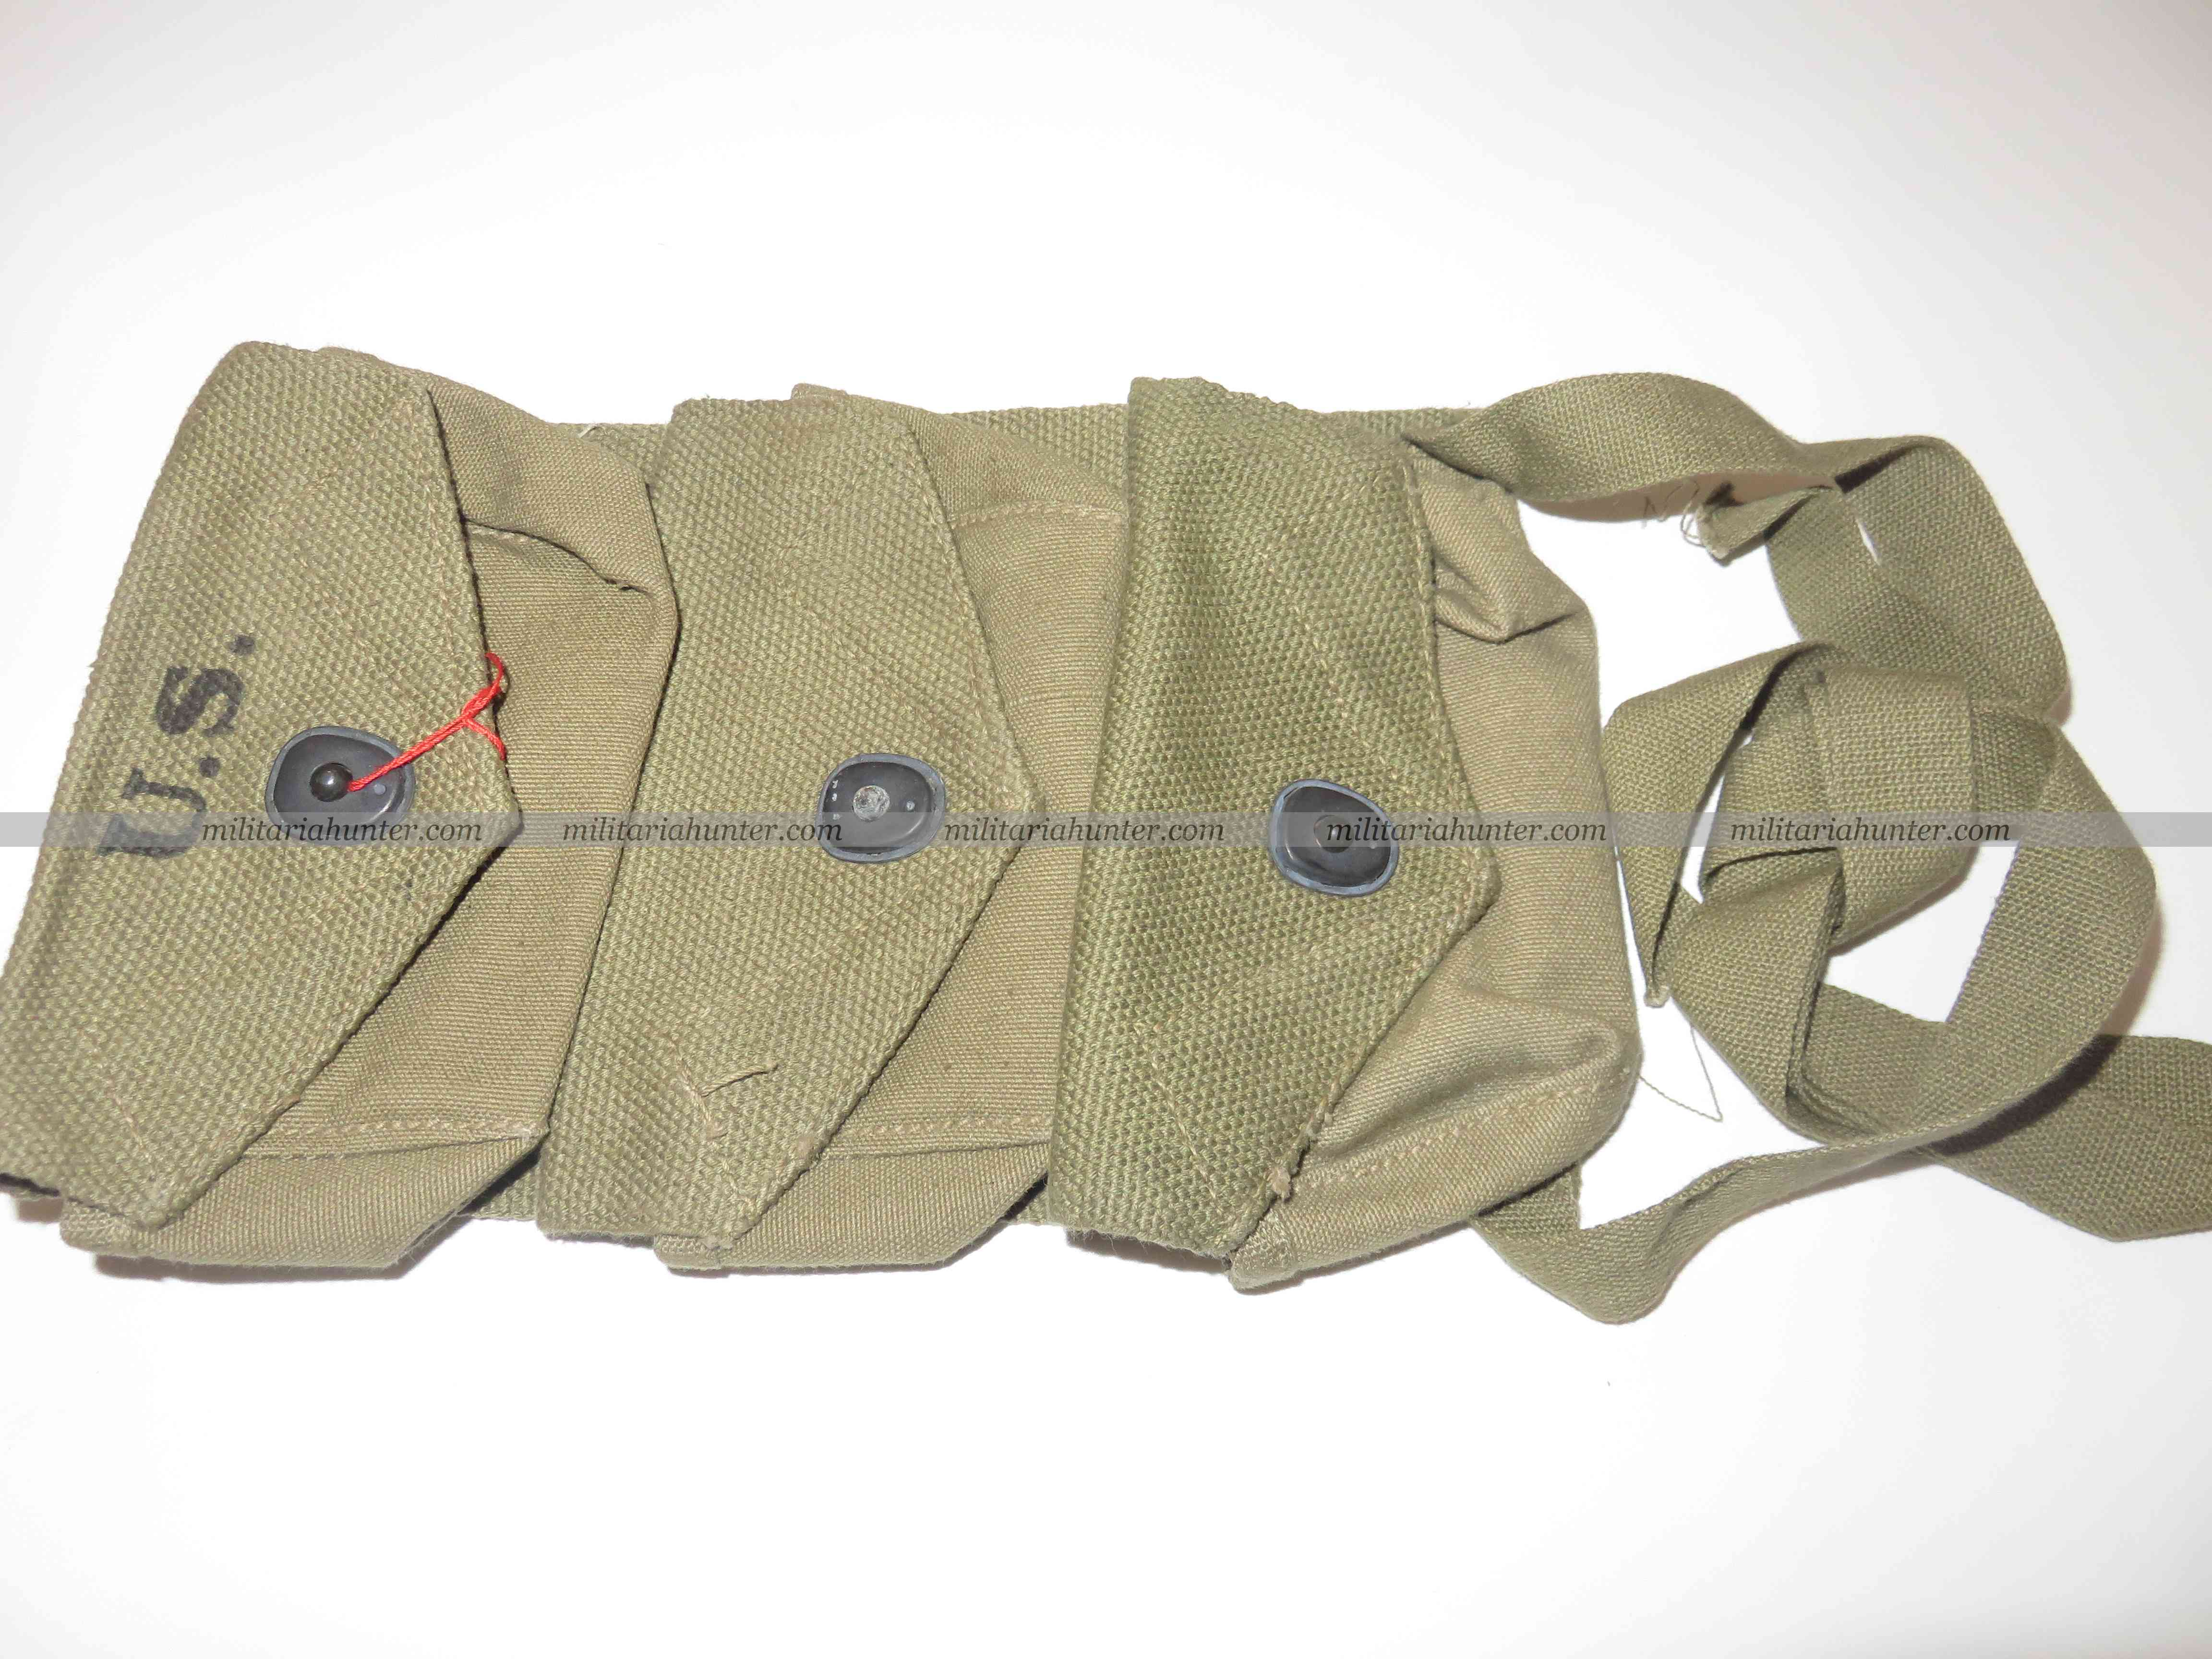 militaria : WW2 Us 3 pockets grenade carrier pouch 1944 - Mint